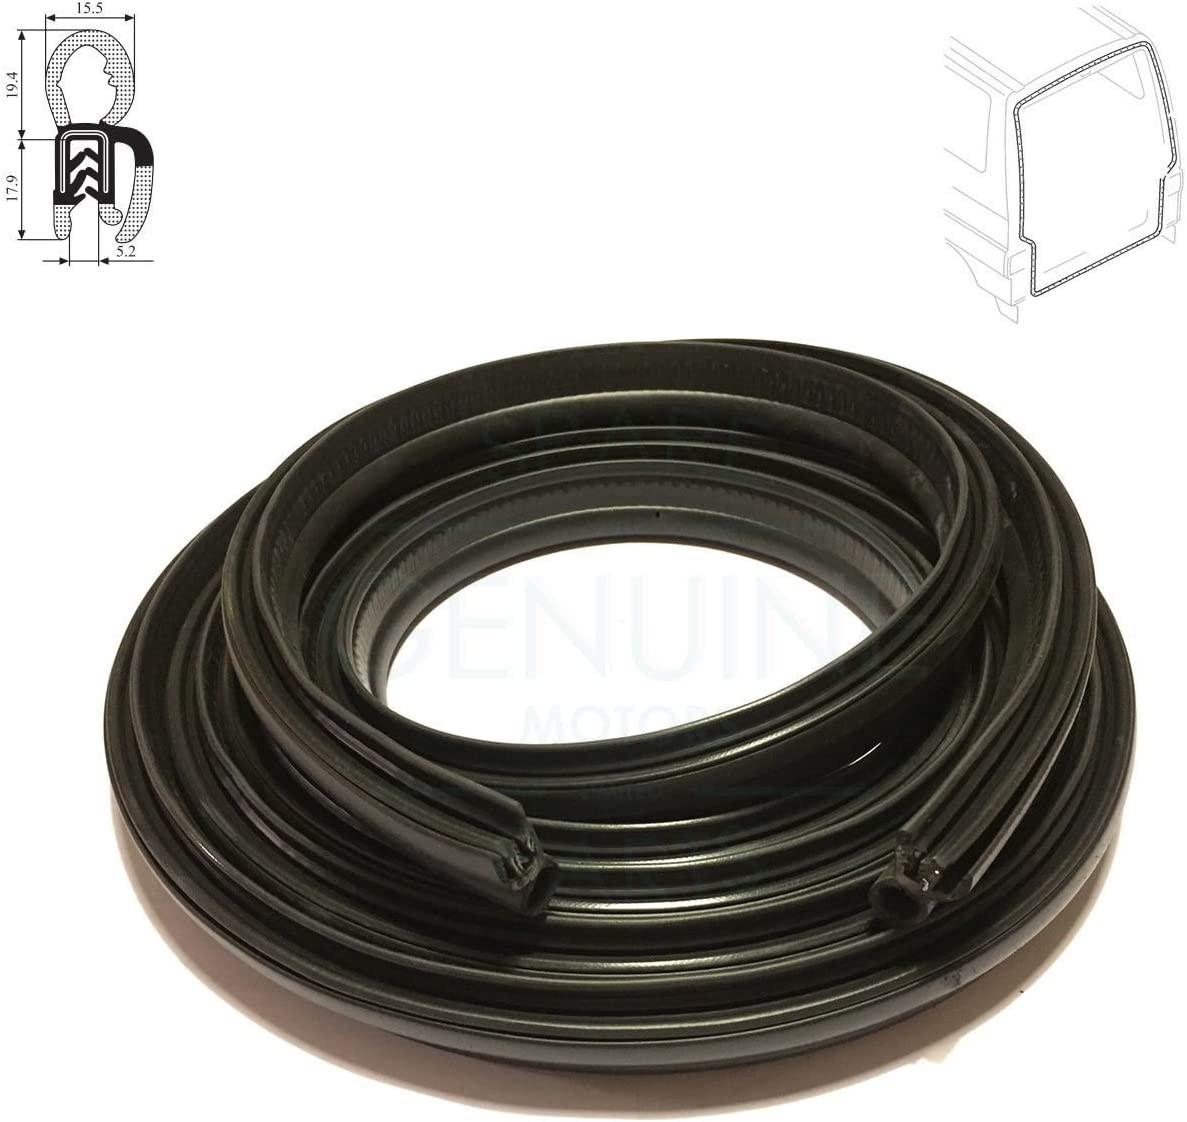 FRONT RIGHT DOOR WEATHERSTRIP RUBBER SEAL FITS VW TRANSPORTER T4 MK4 1990-2003